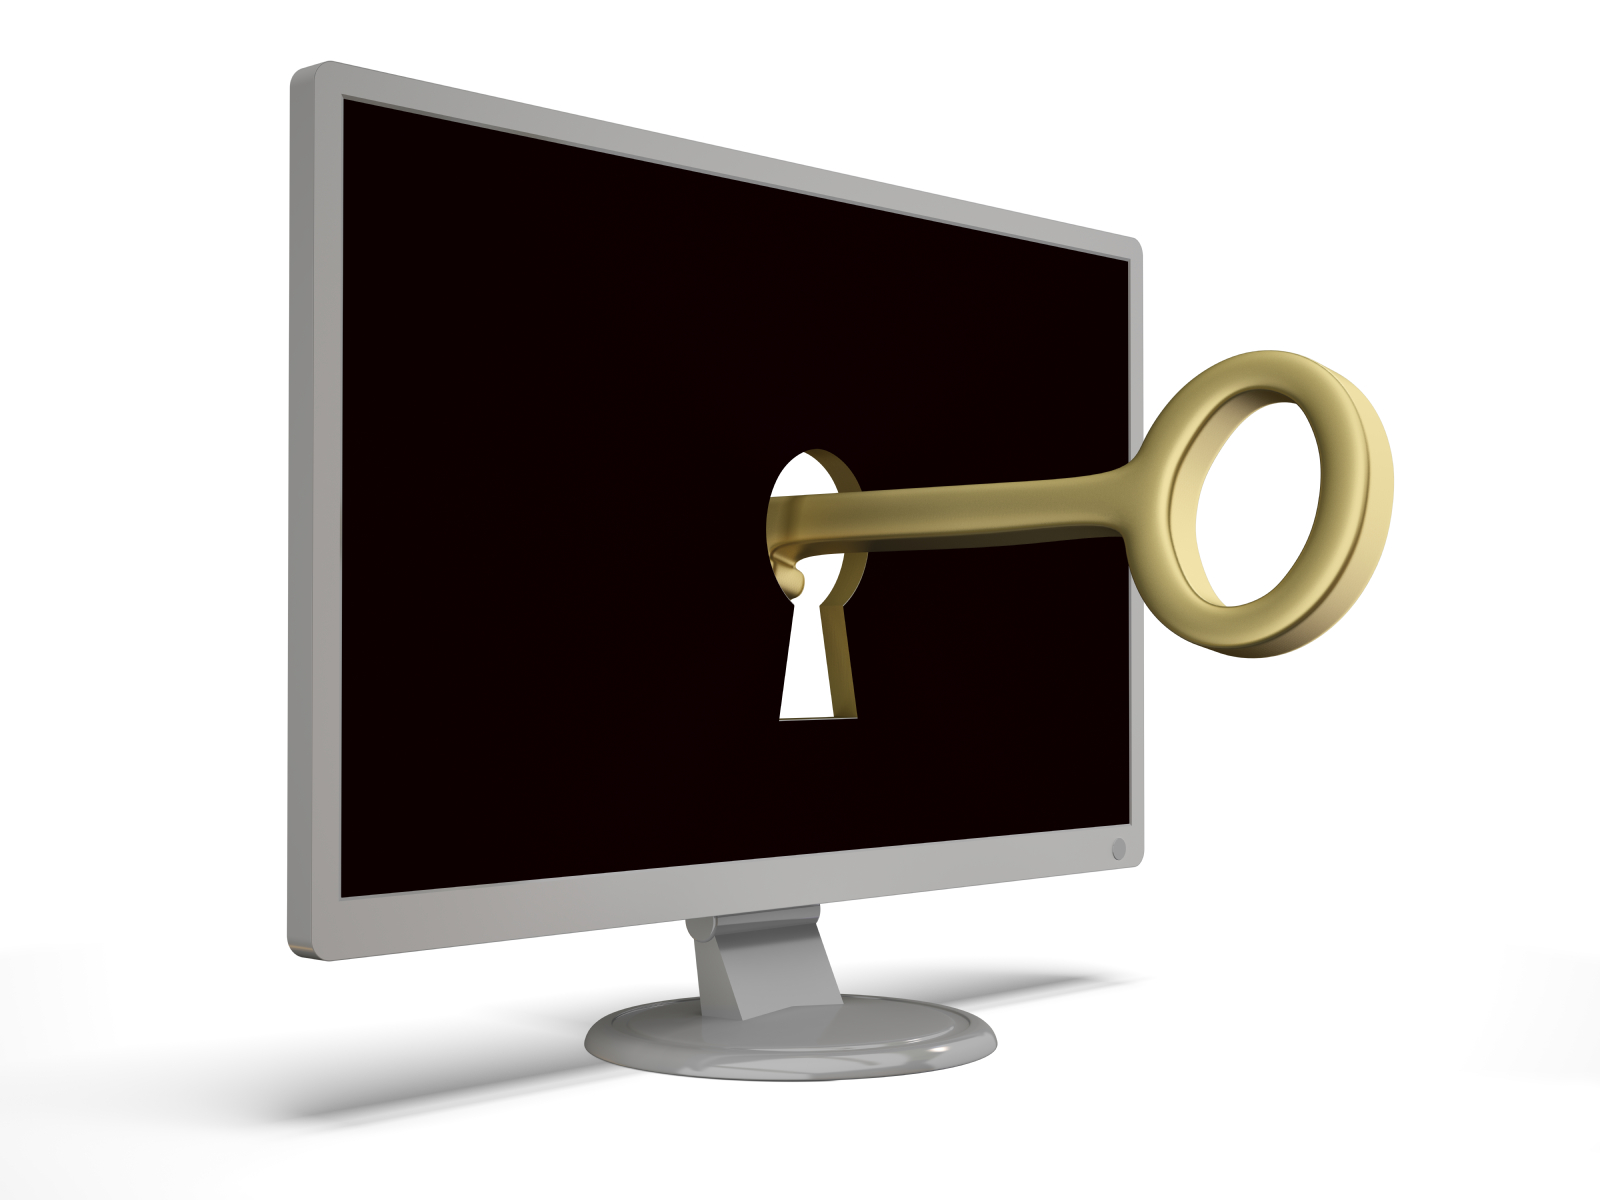 Secure Solutions To Protect Client Data And Comply With New Privacy Laws